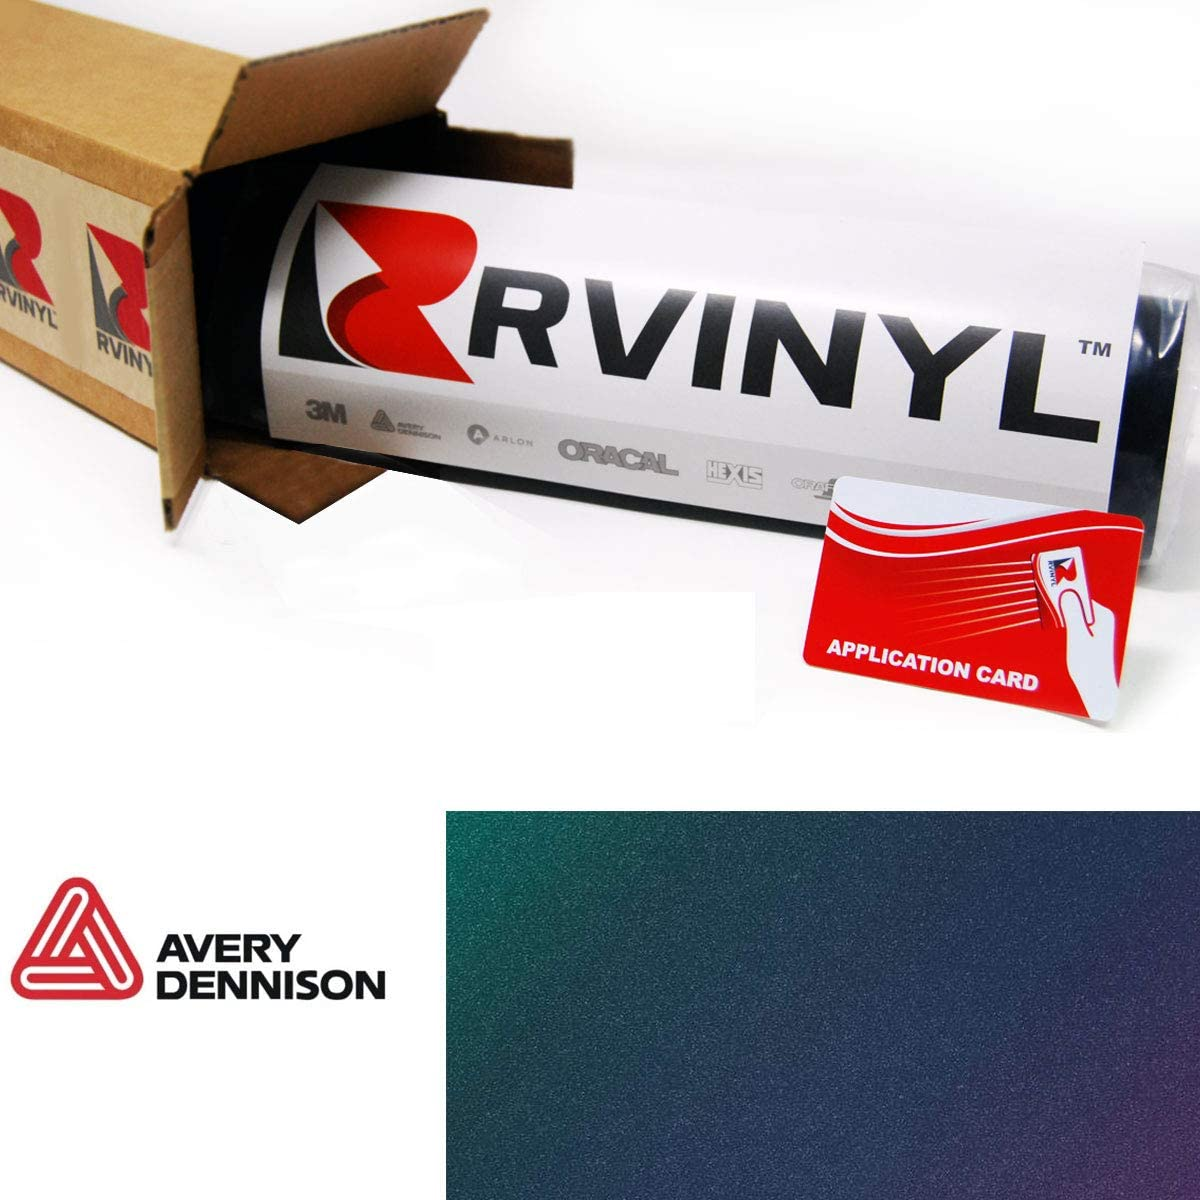 Avery SW900 446-S ColorFlow Satin Rising Sun Supreme Wrapping Film Vinyl Vehicle Car Wrap Sheet Roll 12 x 60 w//Application Card